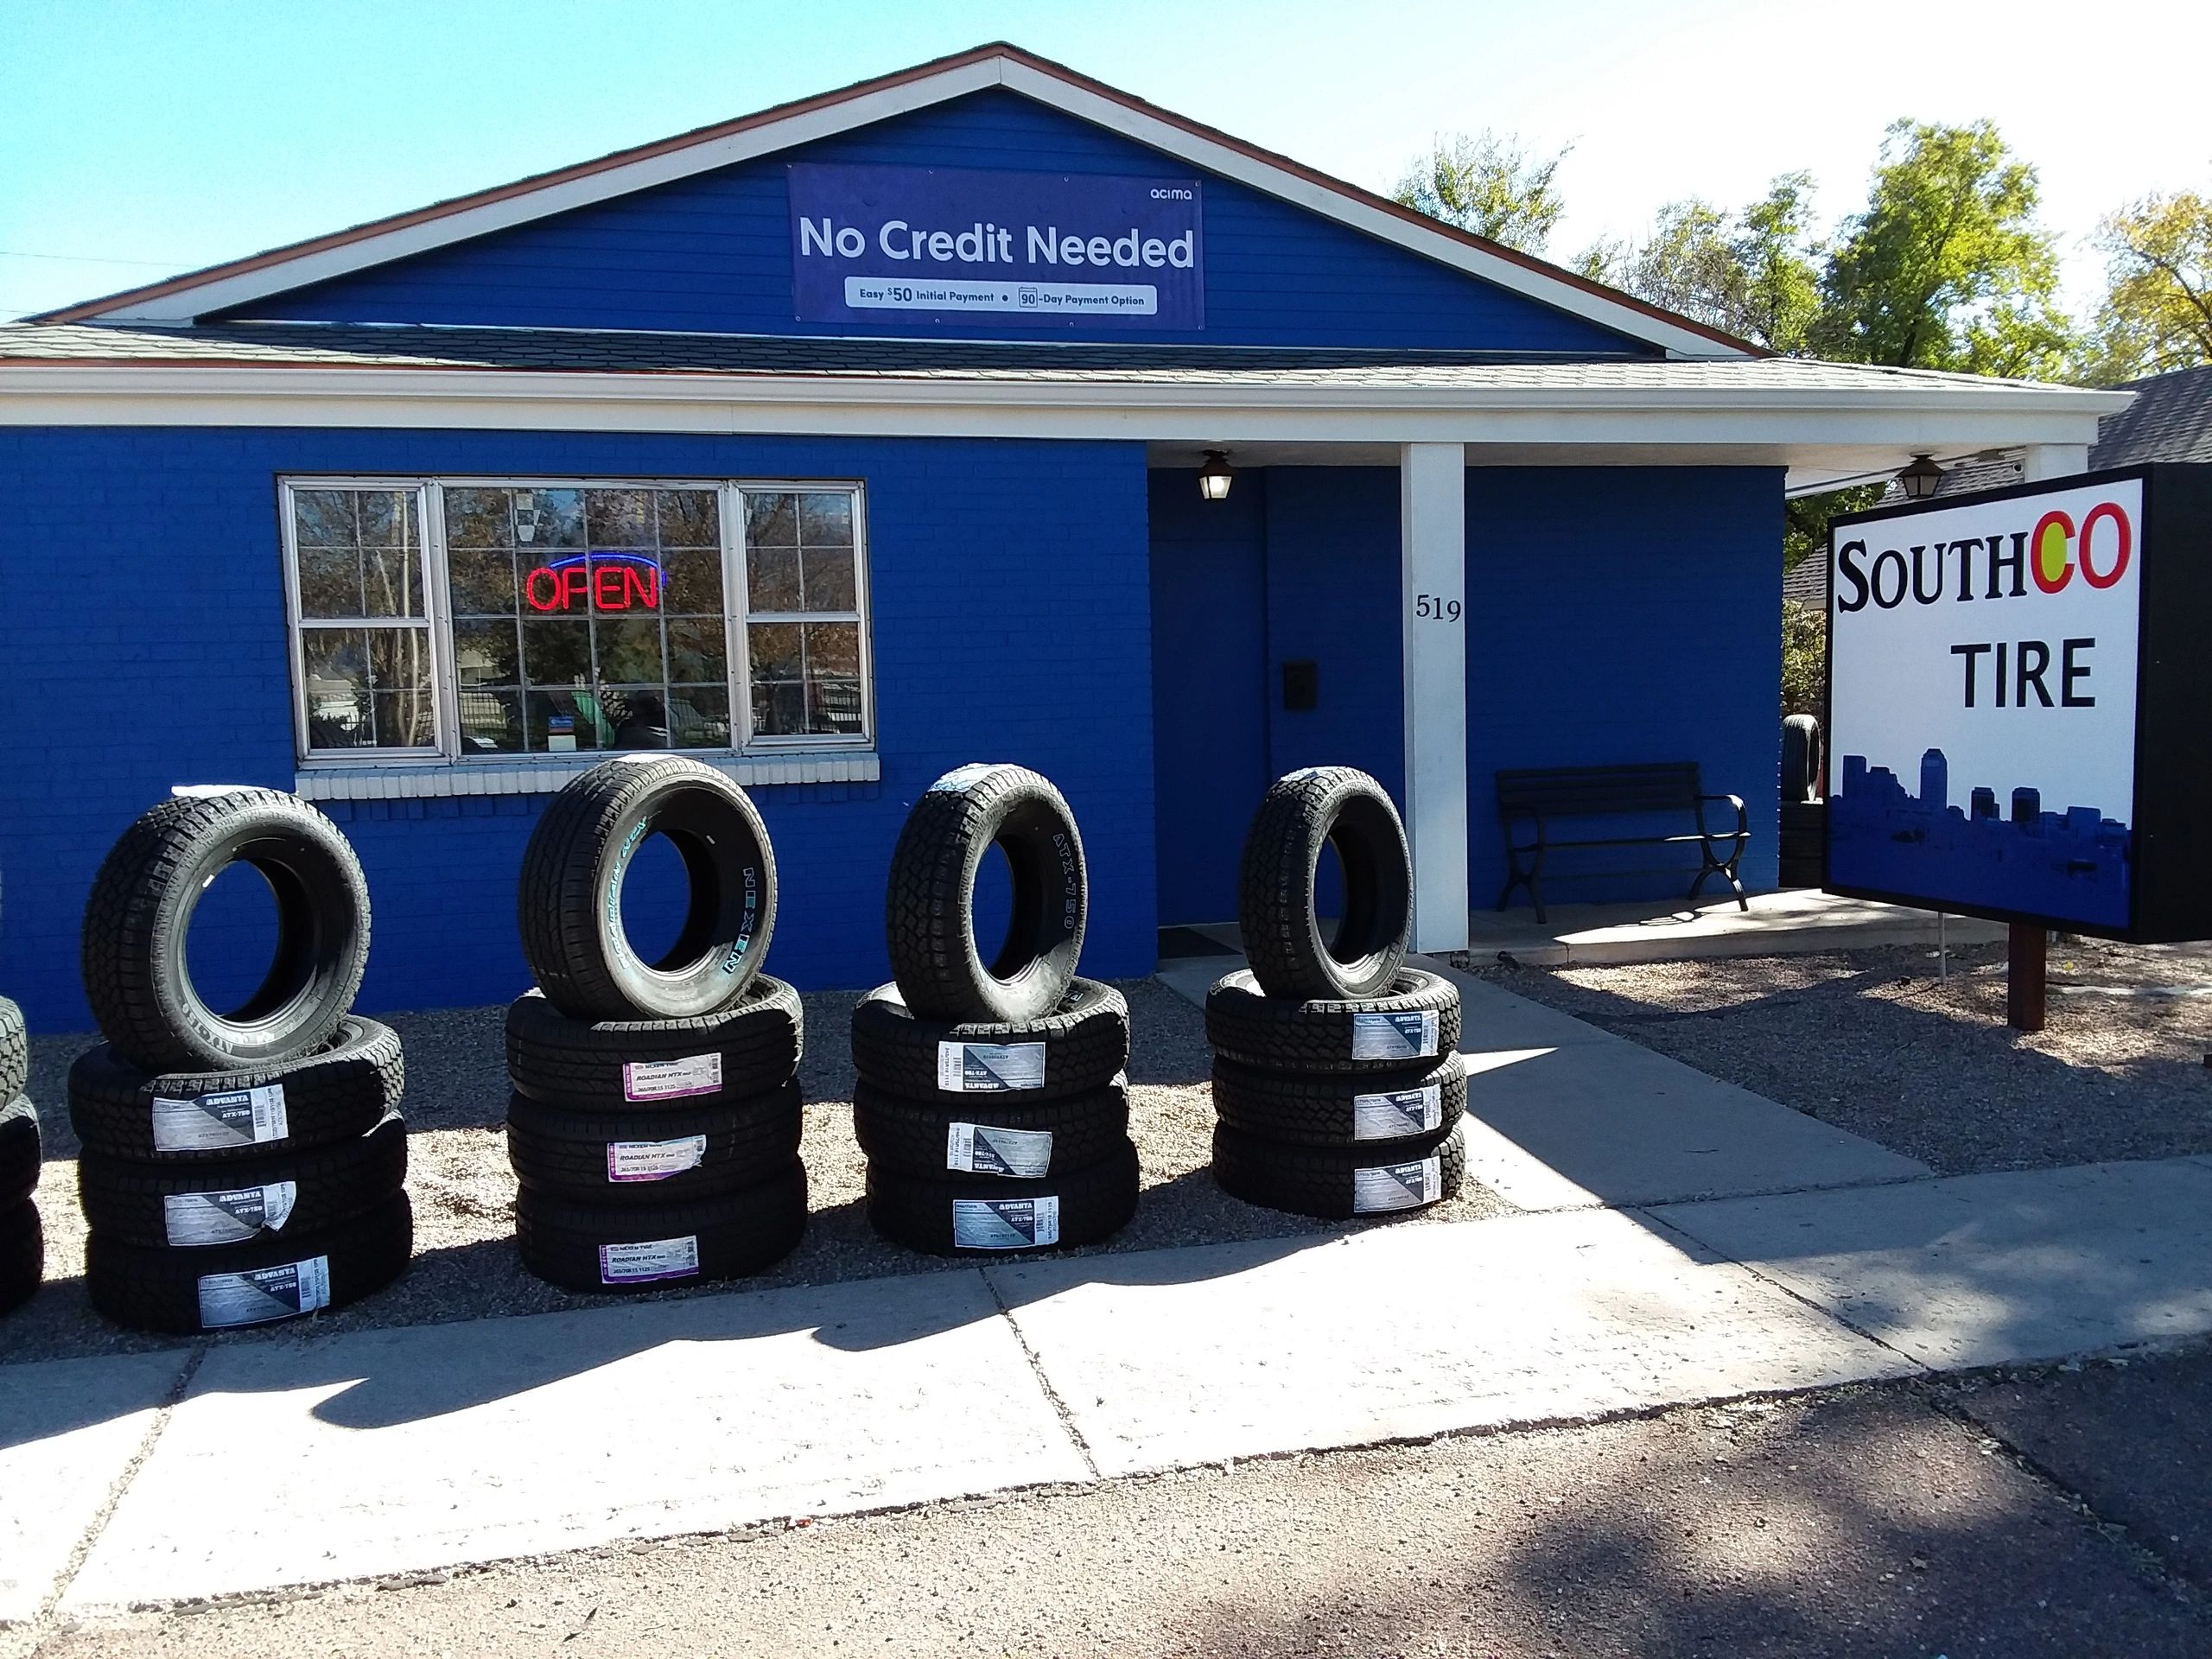 South CO Tire Colorado Springs, CO New and Used Tire Shop